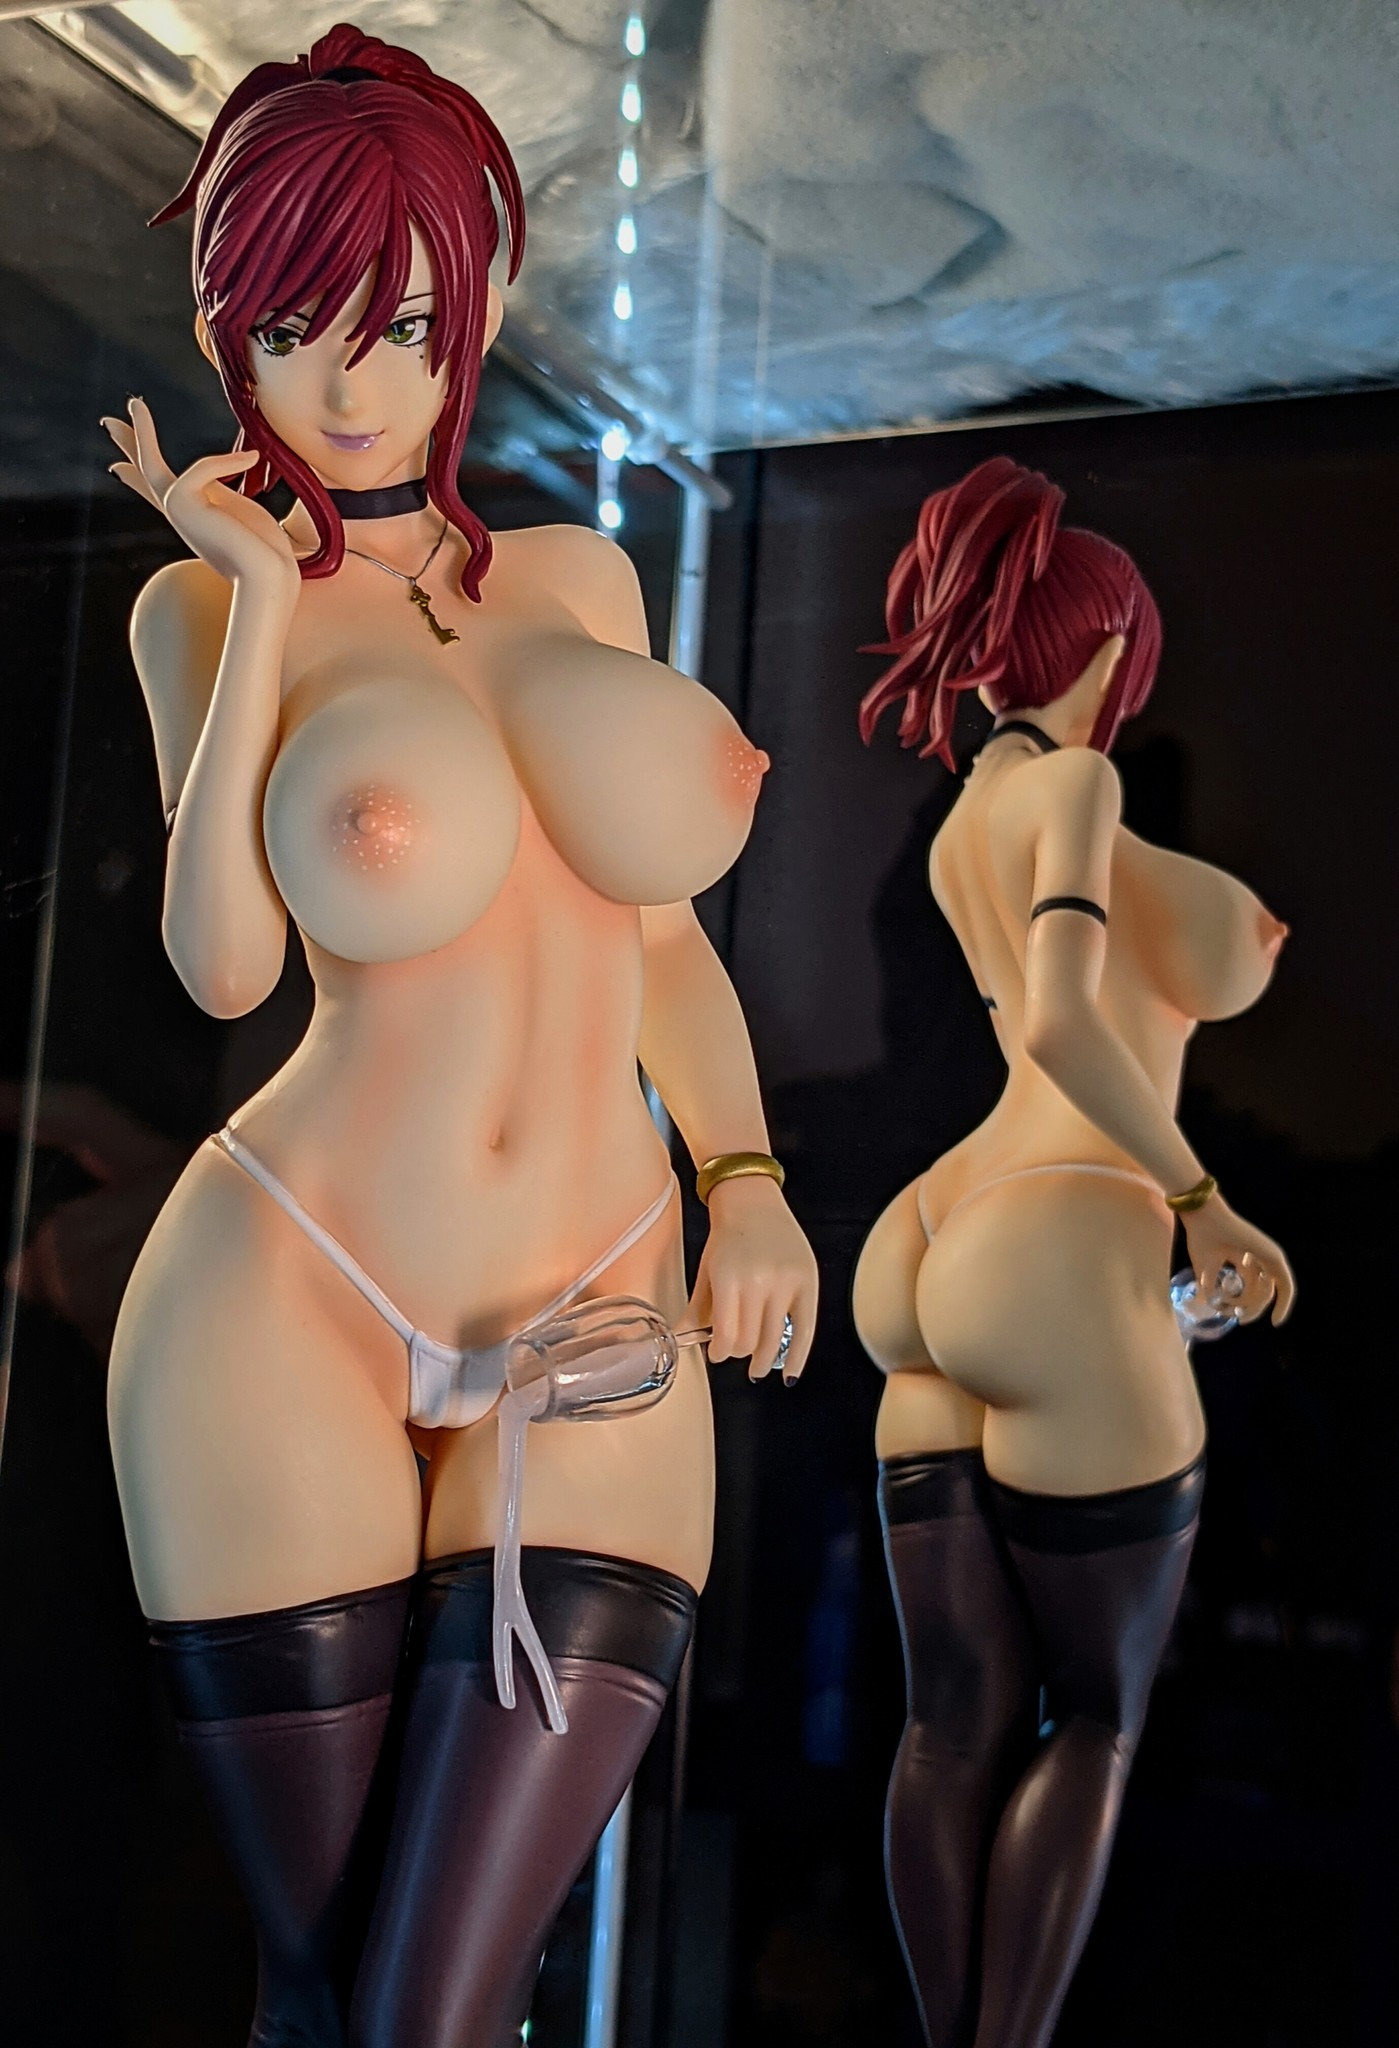 https://static.myfigurecollection.net/upload/pictures/2021/09/16/2854539.jpeg